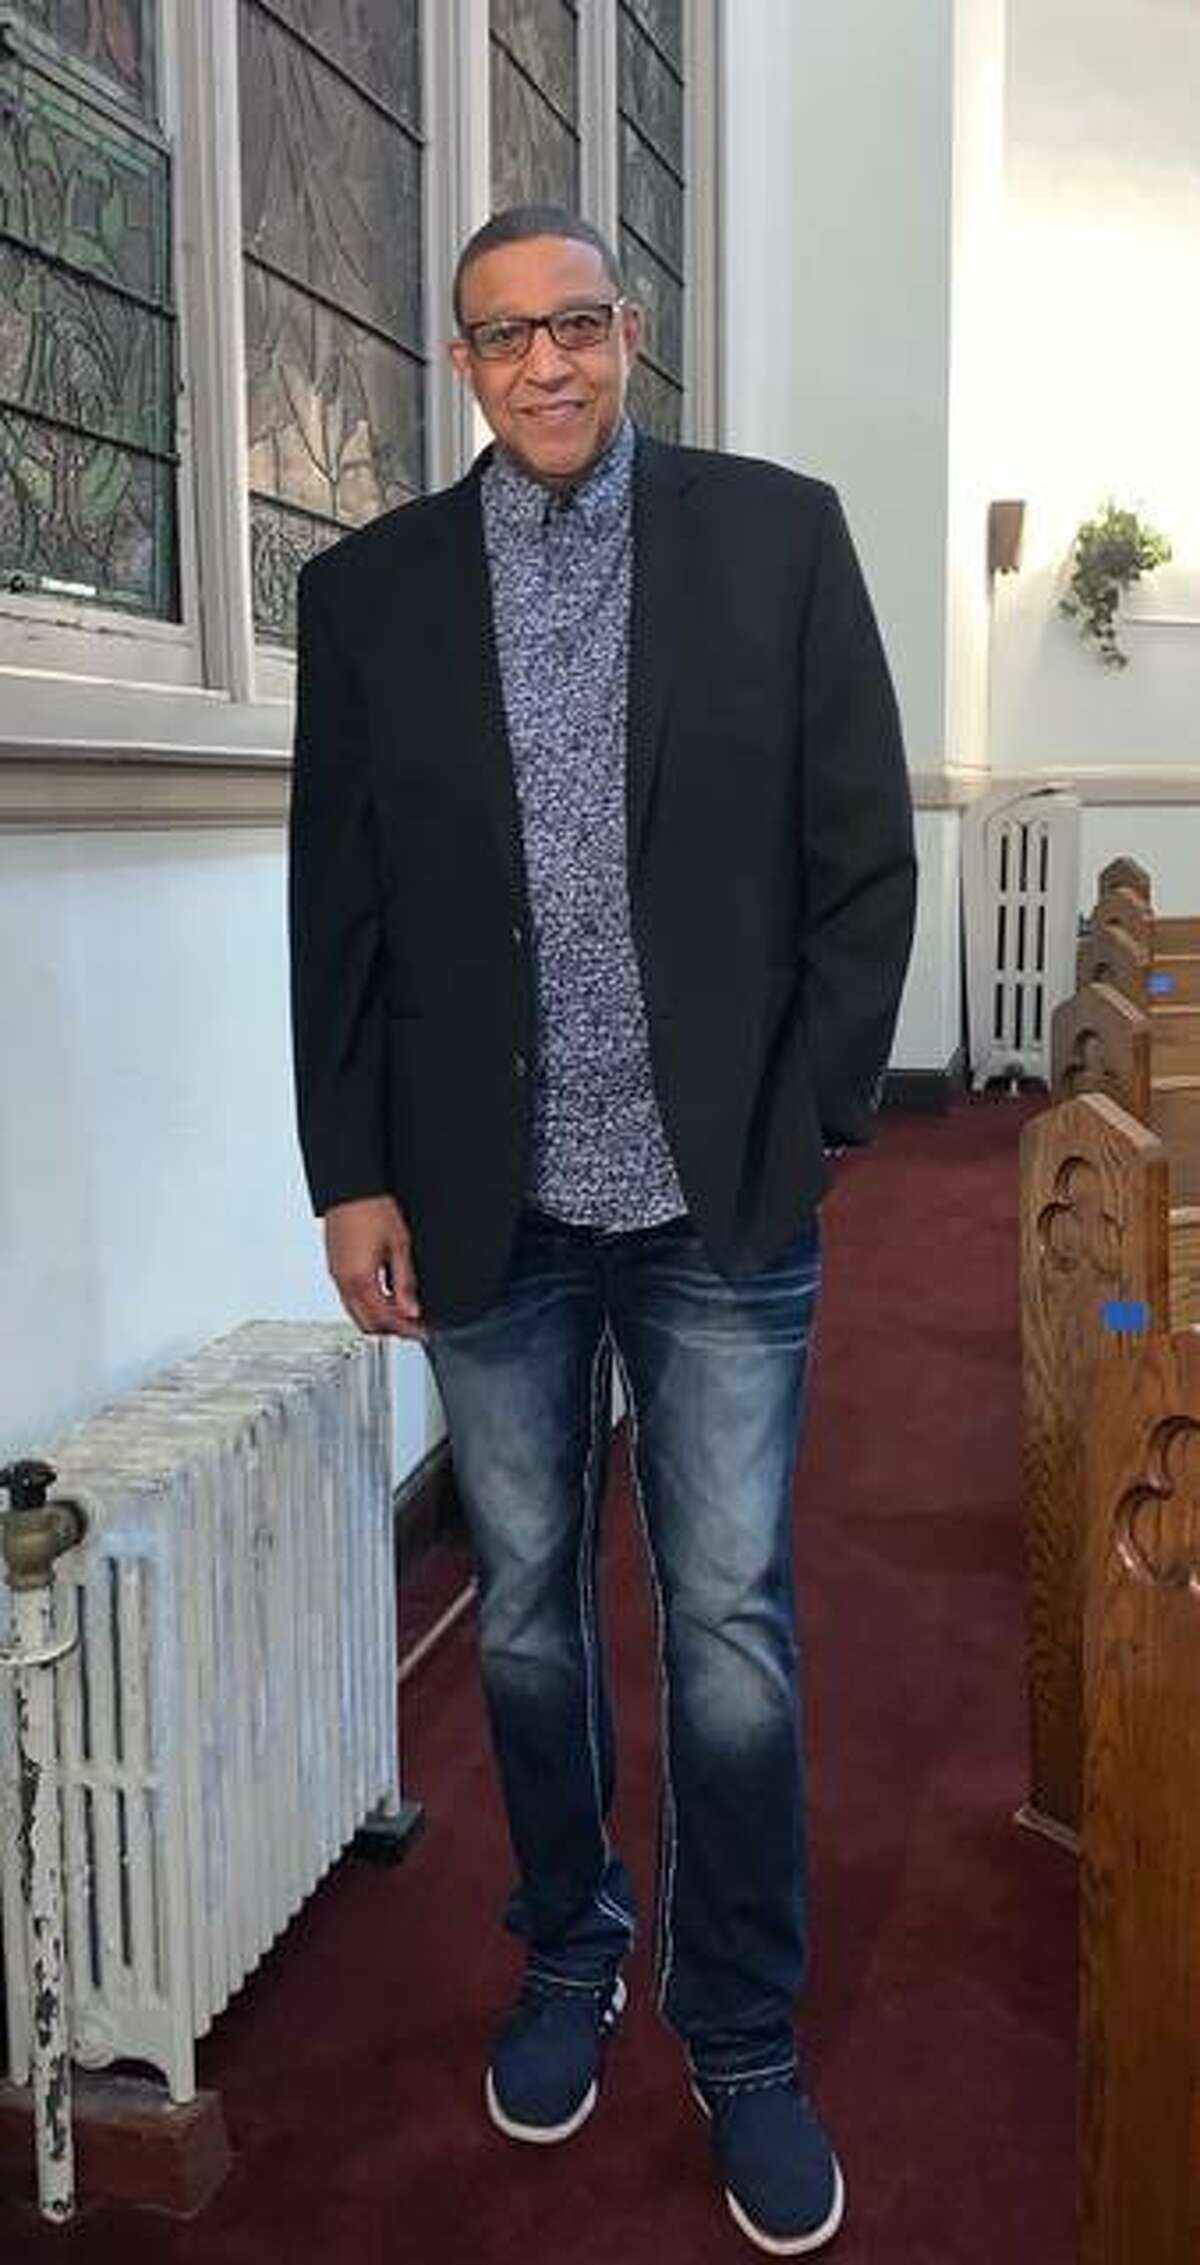 Alton's incoming mayor David Goins is as comfortable working in jeans within his church as he was meeting with community members as an Alton school board member.